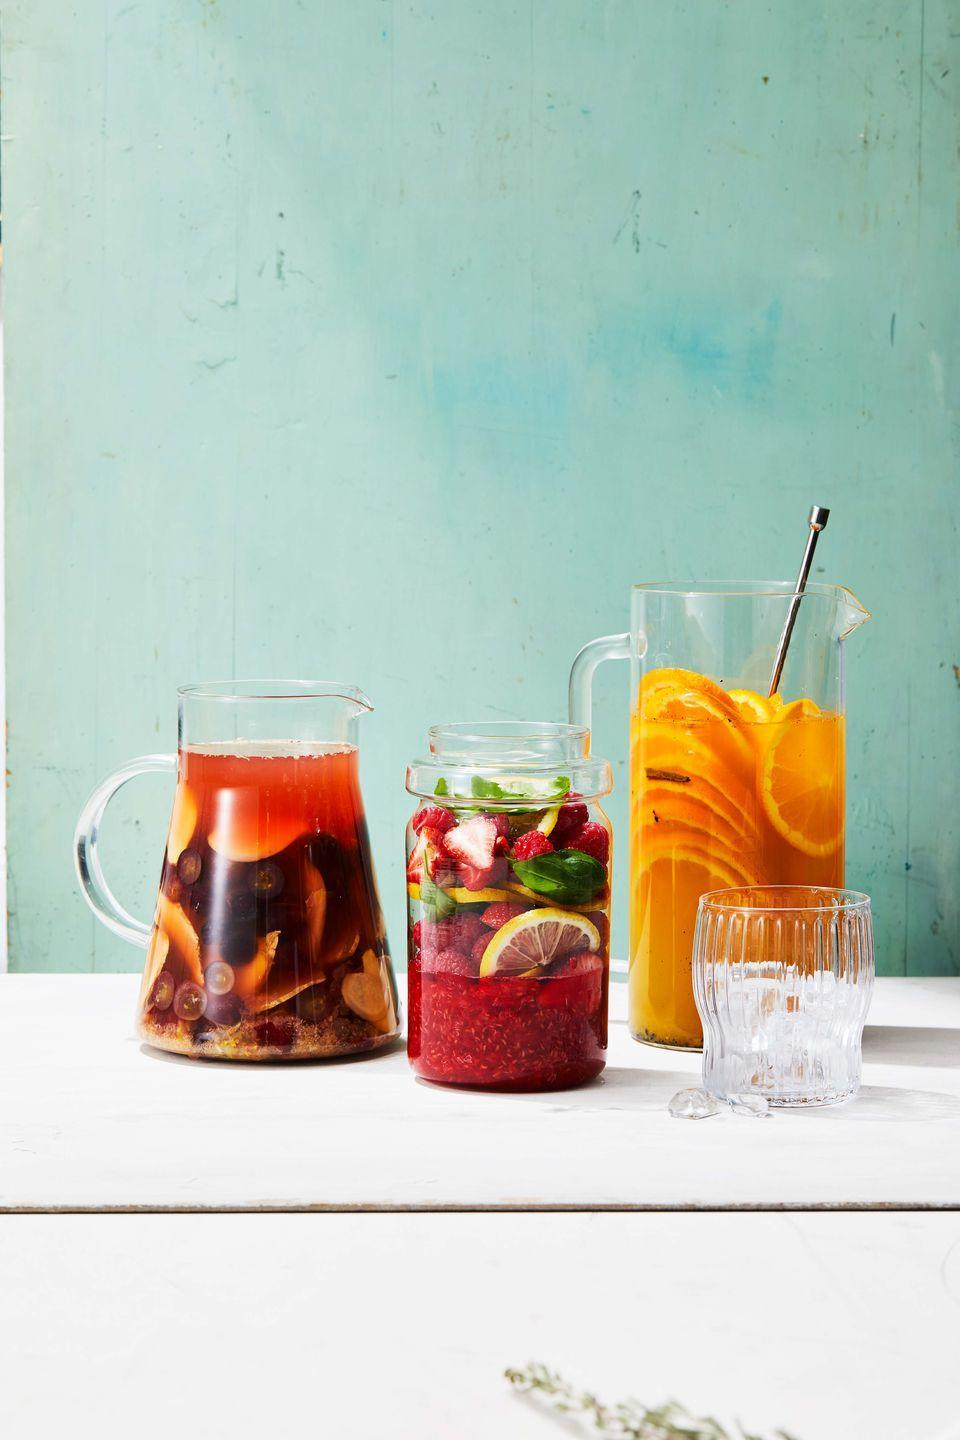 """<p>Real vanilla pods and fresh oranges give this fruity drink a sweet, fragrant flavor.</p><p><em><a href=""""https://www.goodhousekeeping.com/food-recipes/a27542776/vanilla-citrus-honey-sangria-recipe/"""" rel=""""nofollow noopener"""" target=""""_blank"""" data-ylk=""""slk:Get the recipe for Vanilla-Citrus-Honey Sangria »"""" class=""""link rapid-noclick-resp"""">Get the recipe for Vanilla-Citrus-Honey Sangria »</a></em></p>"""